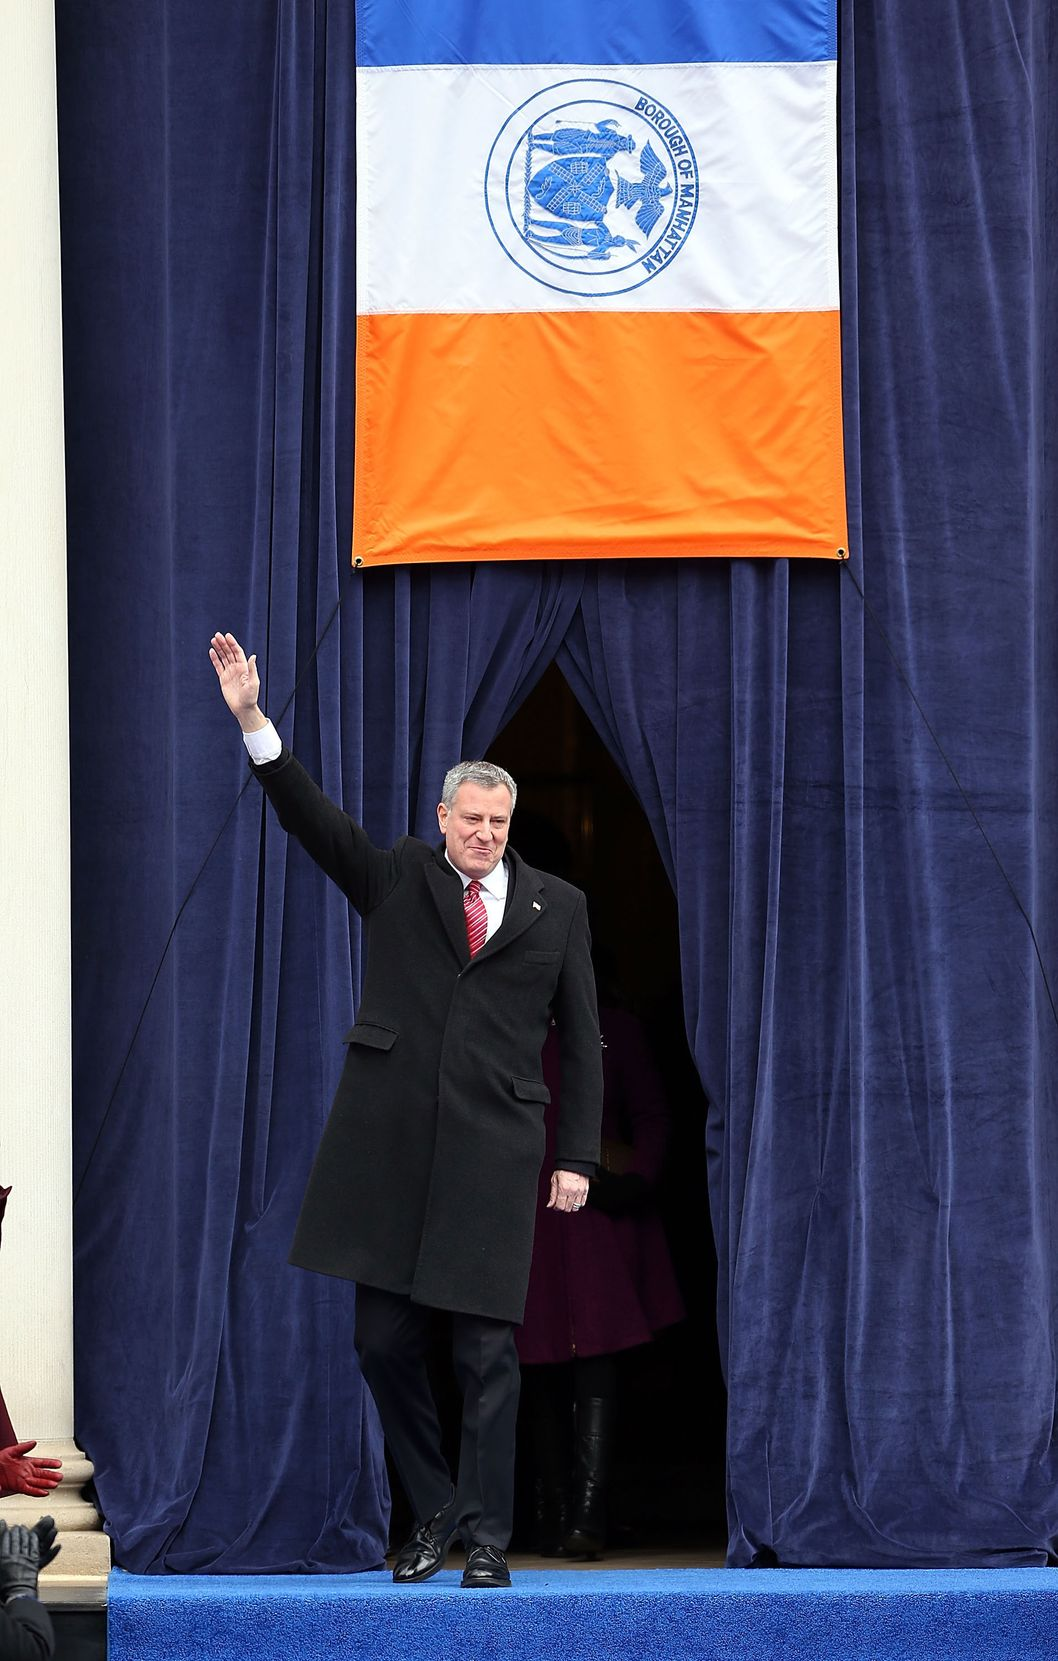 NEW YORK, NY - JANUARY 01:  New York City's 109th Mayor, Bill de Blasio, walks onto stage at City Hall on January 1, 2014 in New York City. Mayor de Blasio was sworn in using a Bible once owned by President Franklin Delano Roosevelt. Following the 12 years of the Michael Bloomberg administration, Mayor de Blasio won on a liberal platform that emphasized the growing gulf between the rich and poor in New York City.  (Photo by Spencer Platt/Getty Images)